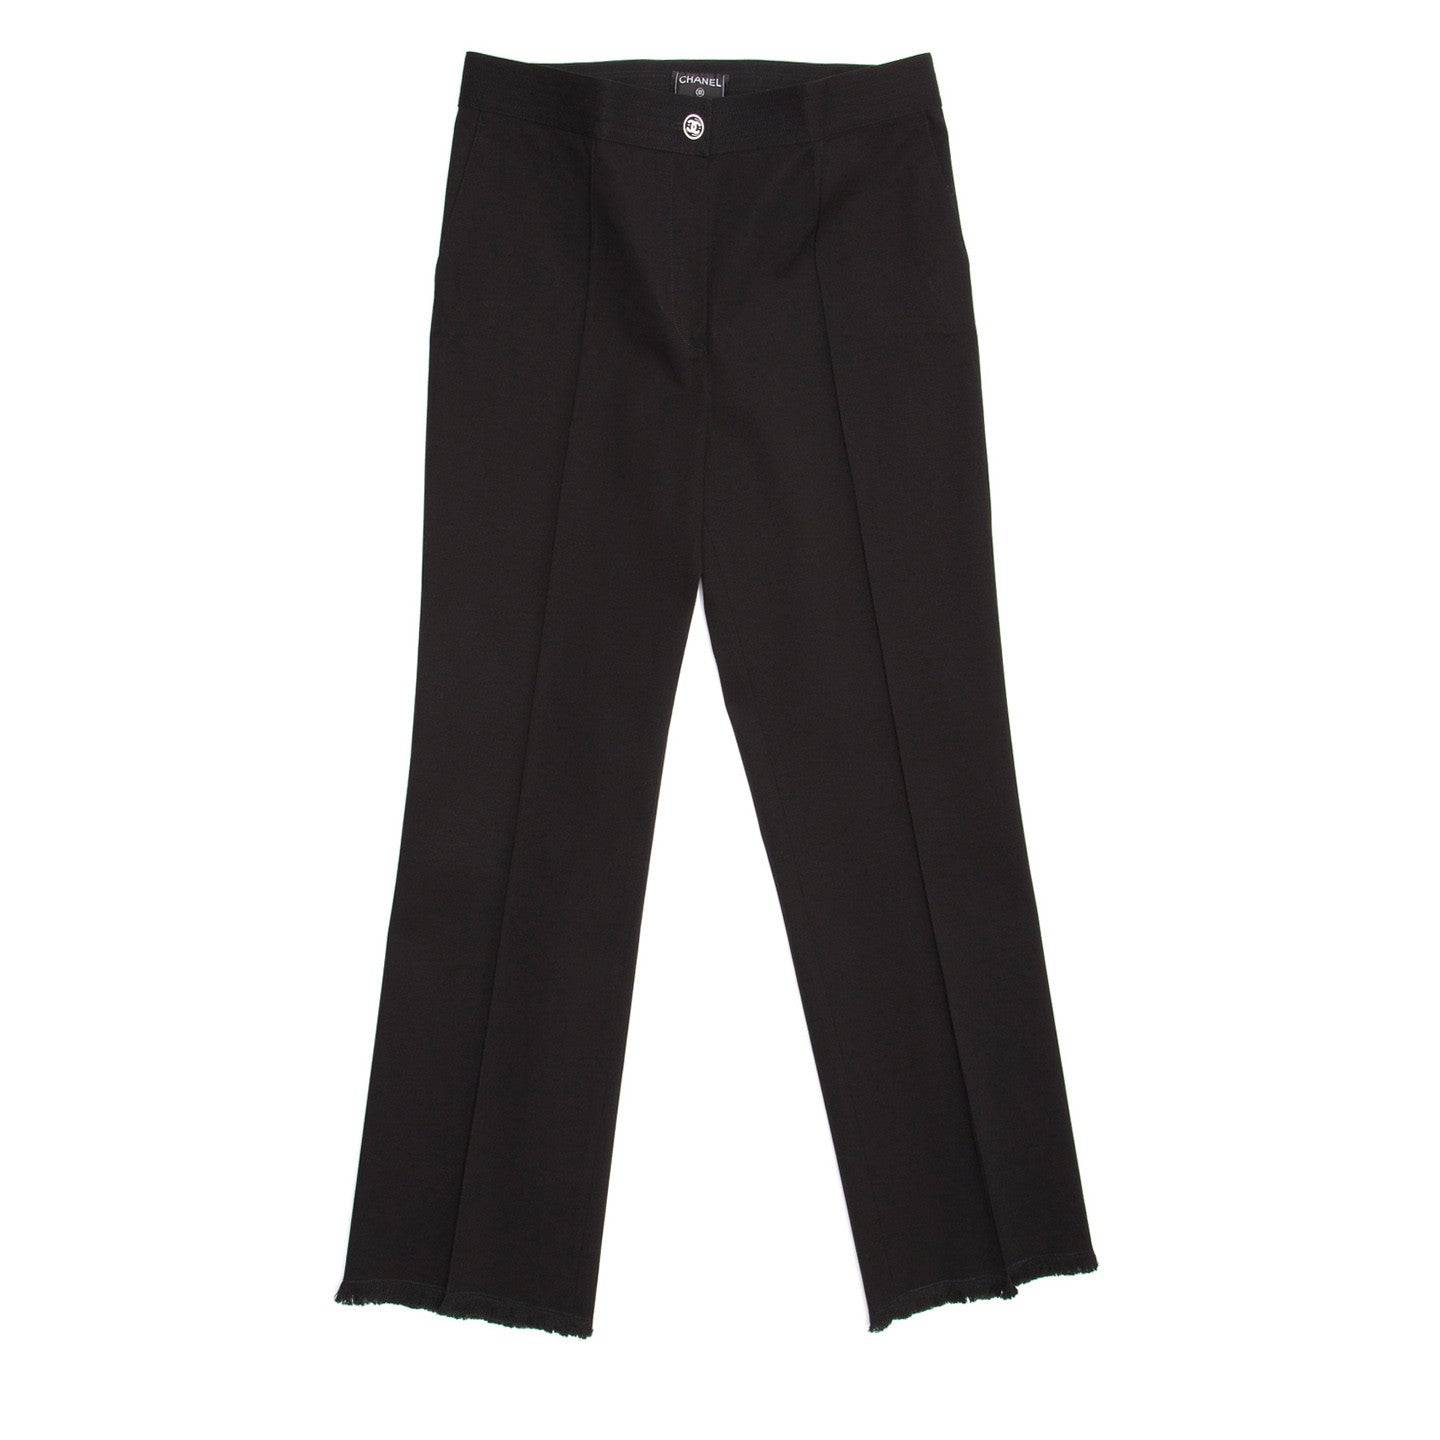 Find an authentic preowned Chanel Black Cotton Cropped Pants, size 44 (French) at BunnyJack, where a portion of every sale goes to charity.